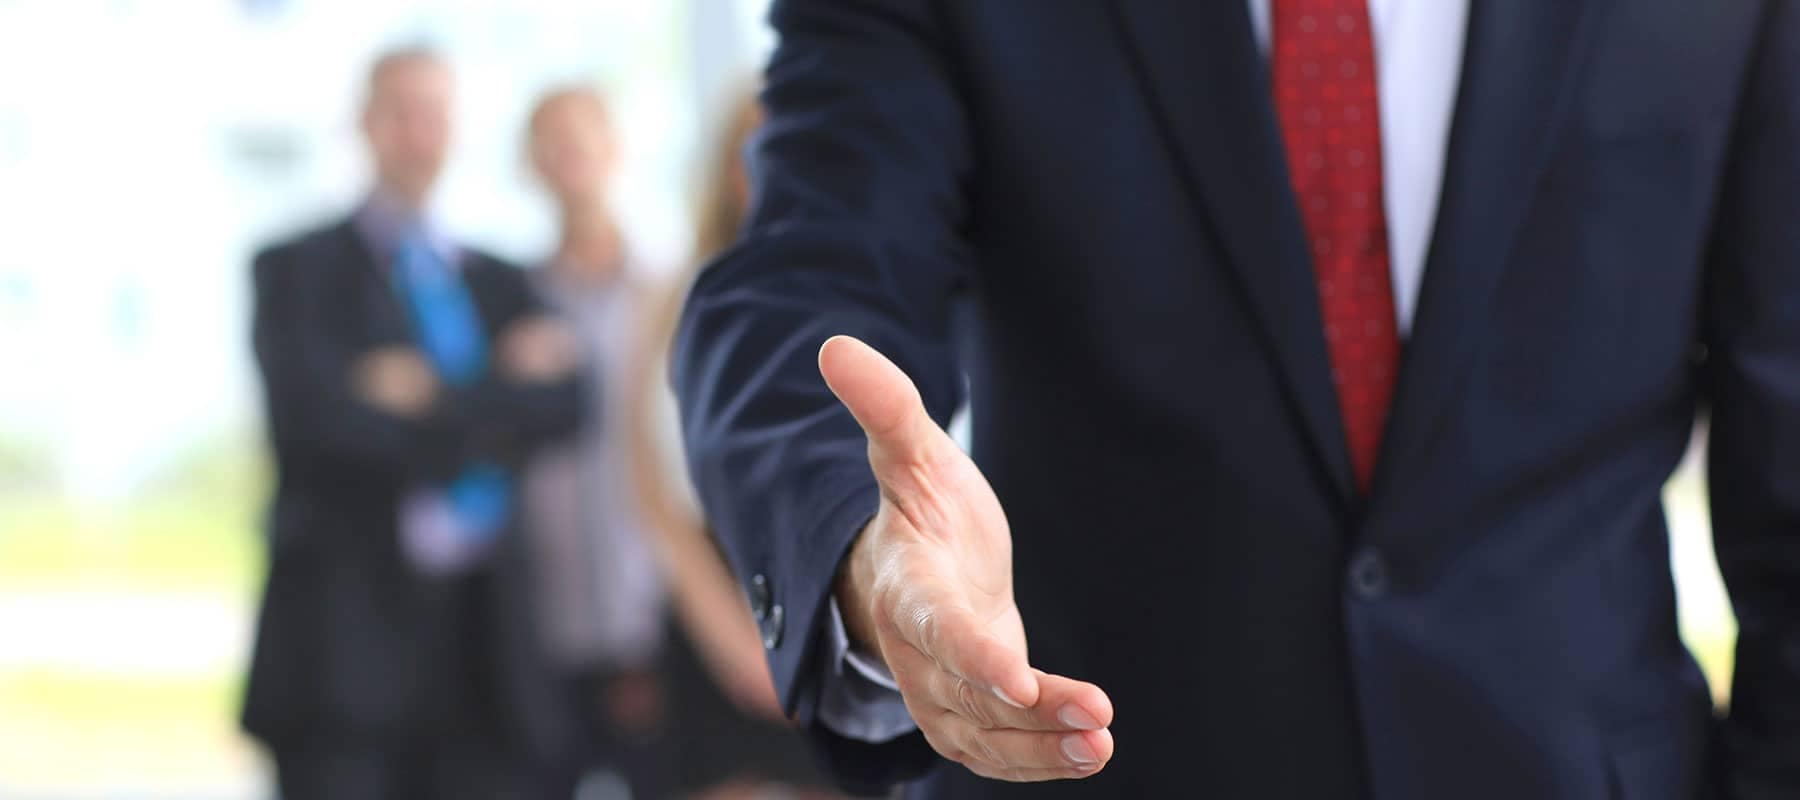 man in suit reaches out to shake hands